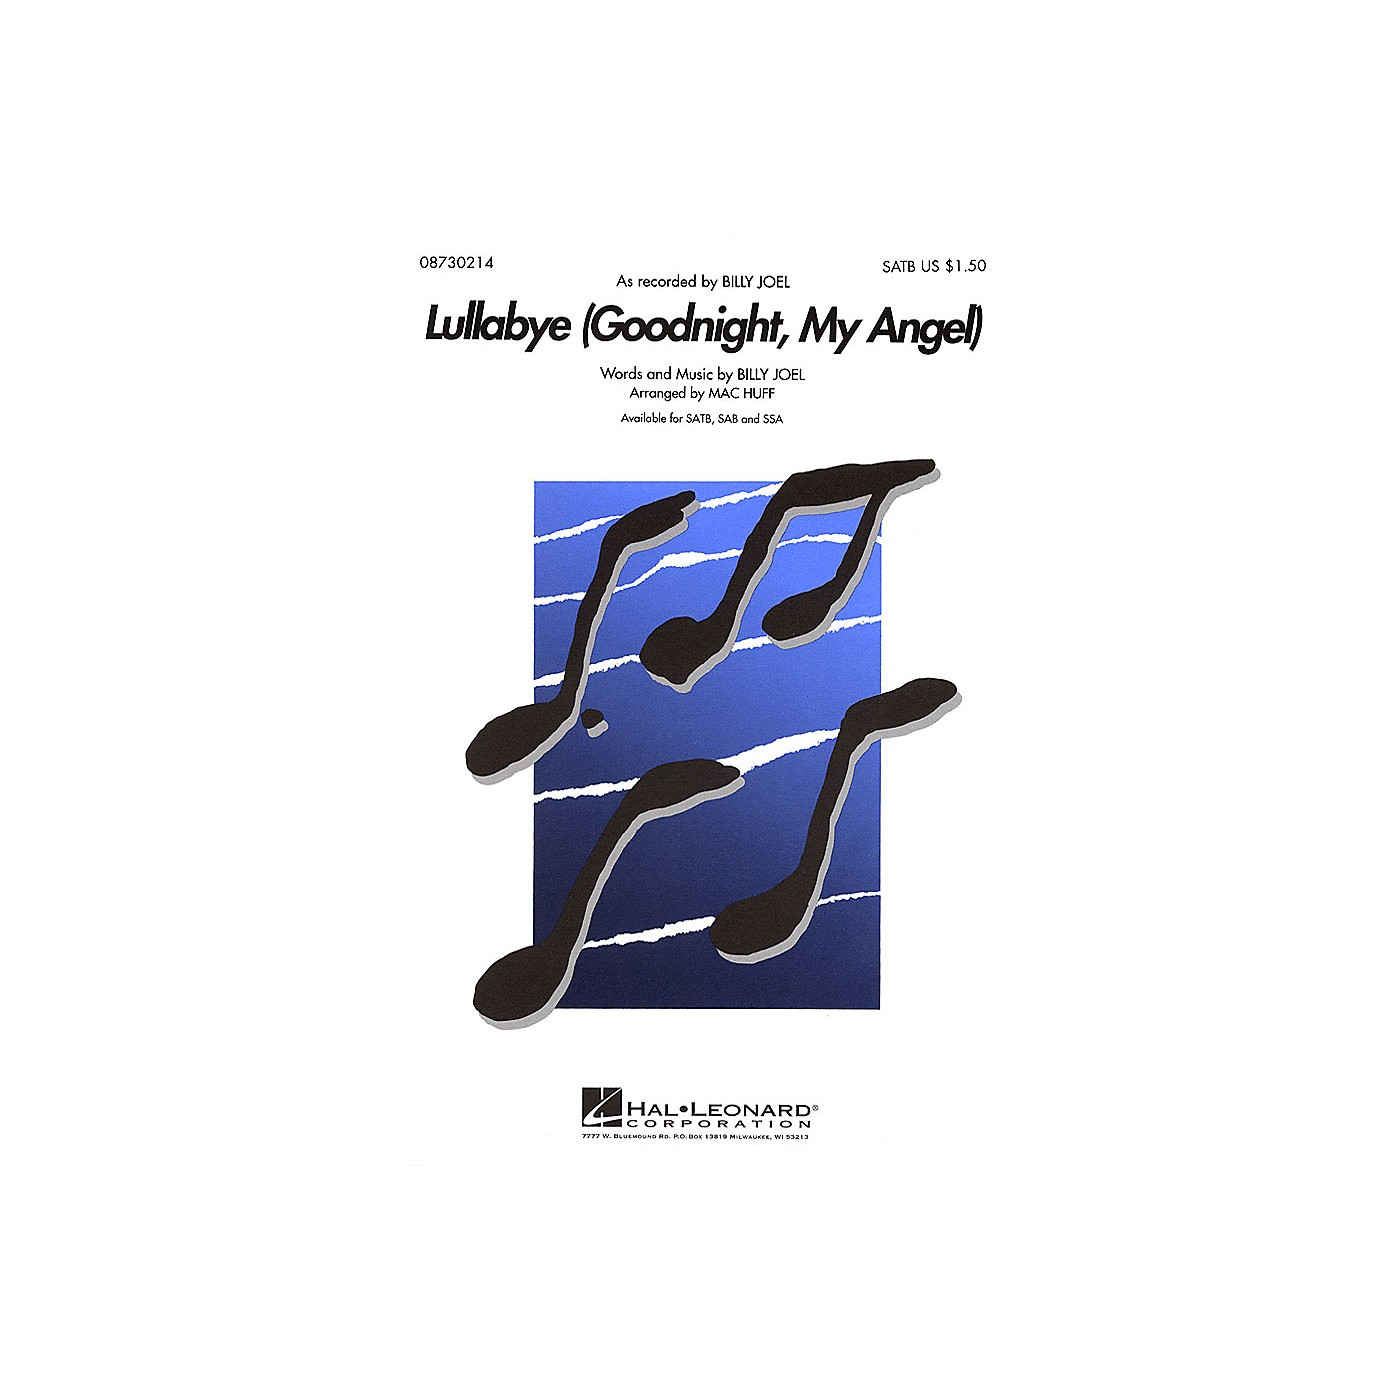 Hal Leonard Lullabye (Goodnight, My Angel) SATB by Billy Joel arranged by Mac Huff thumbnail